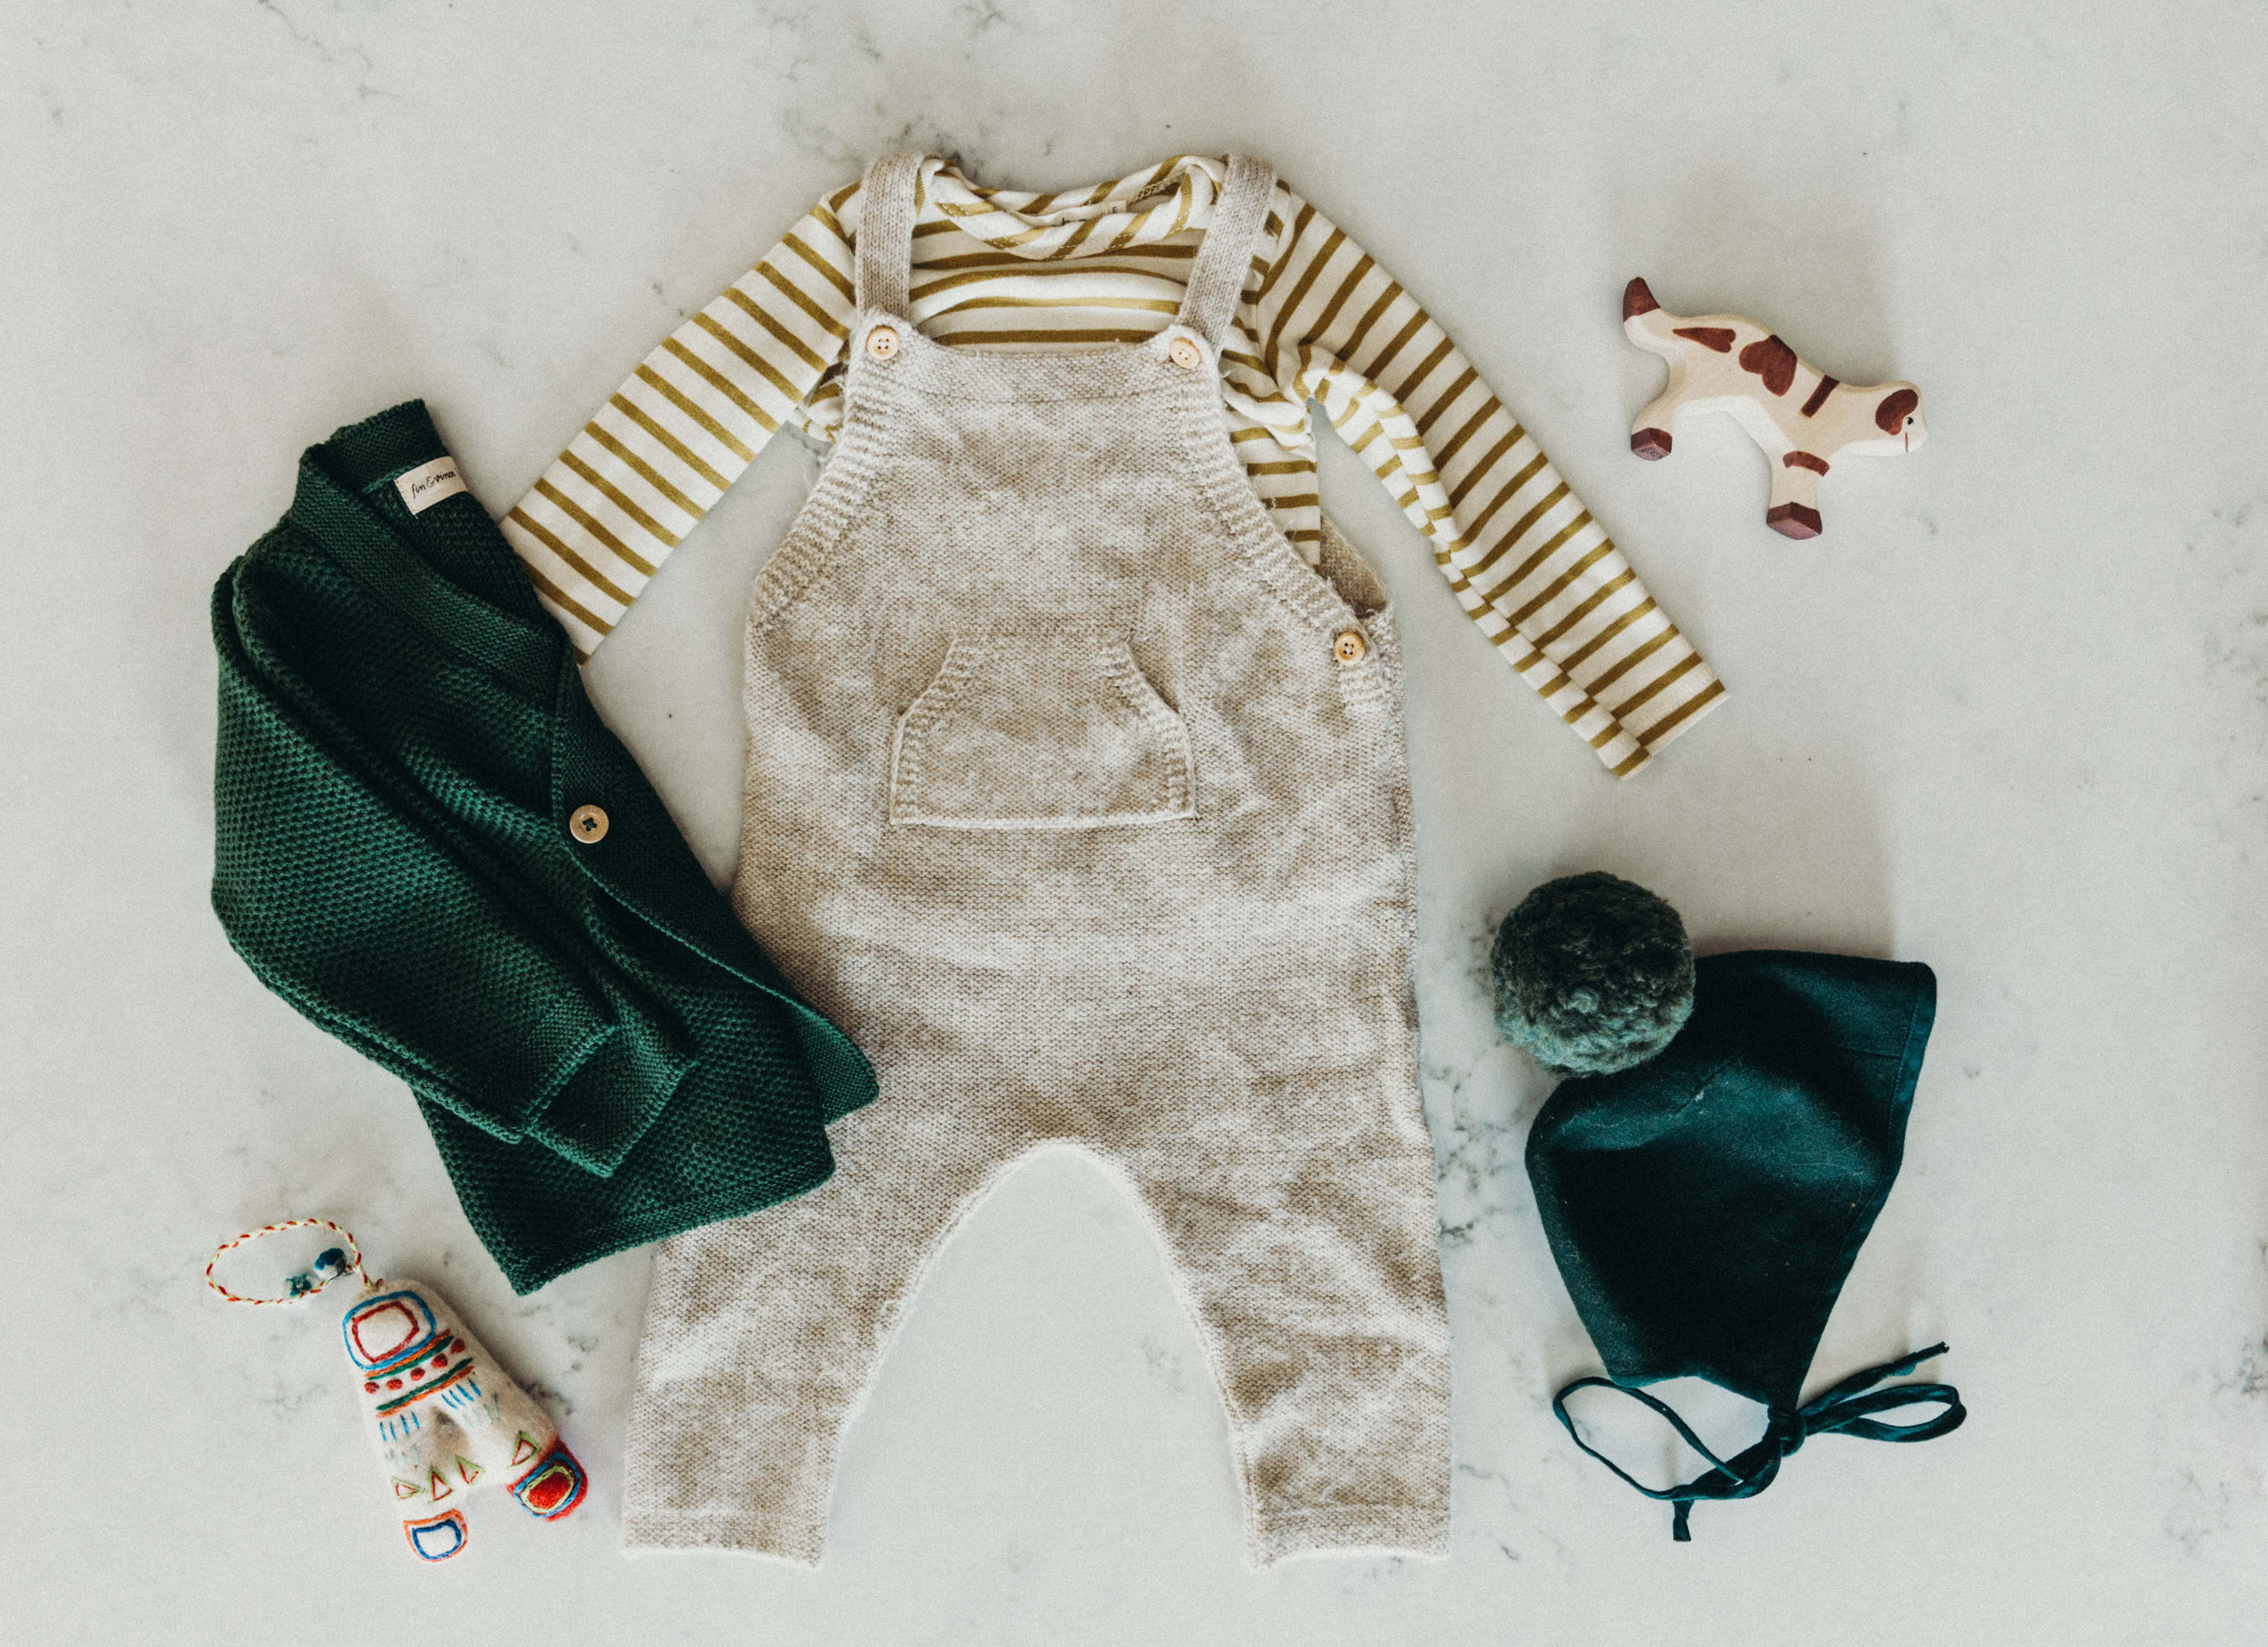 Ayrton's cozy Christmas Day outfit: Pine Fin & Vince kimono cardigan, Mabo Kids organic cotton lap striped natural/chartreuse, Zara knit overalls, Briar Handmade Juniper pom